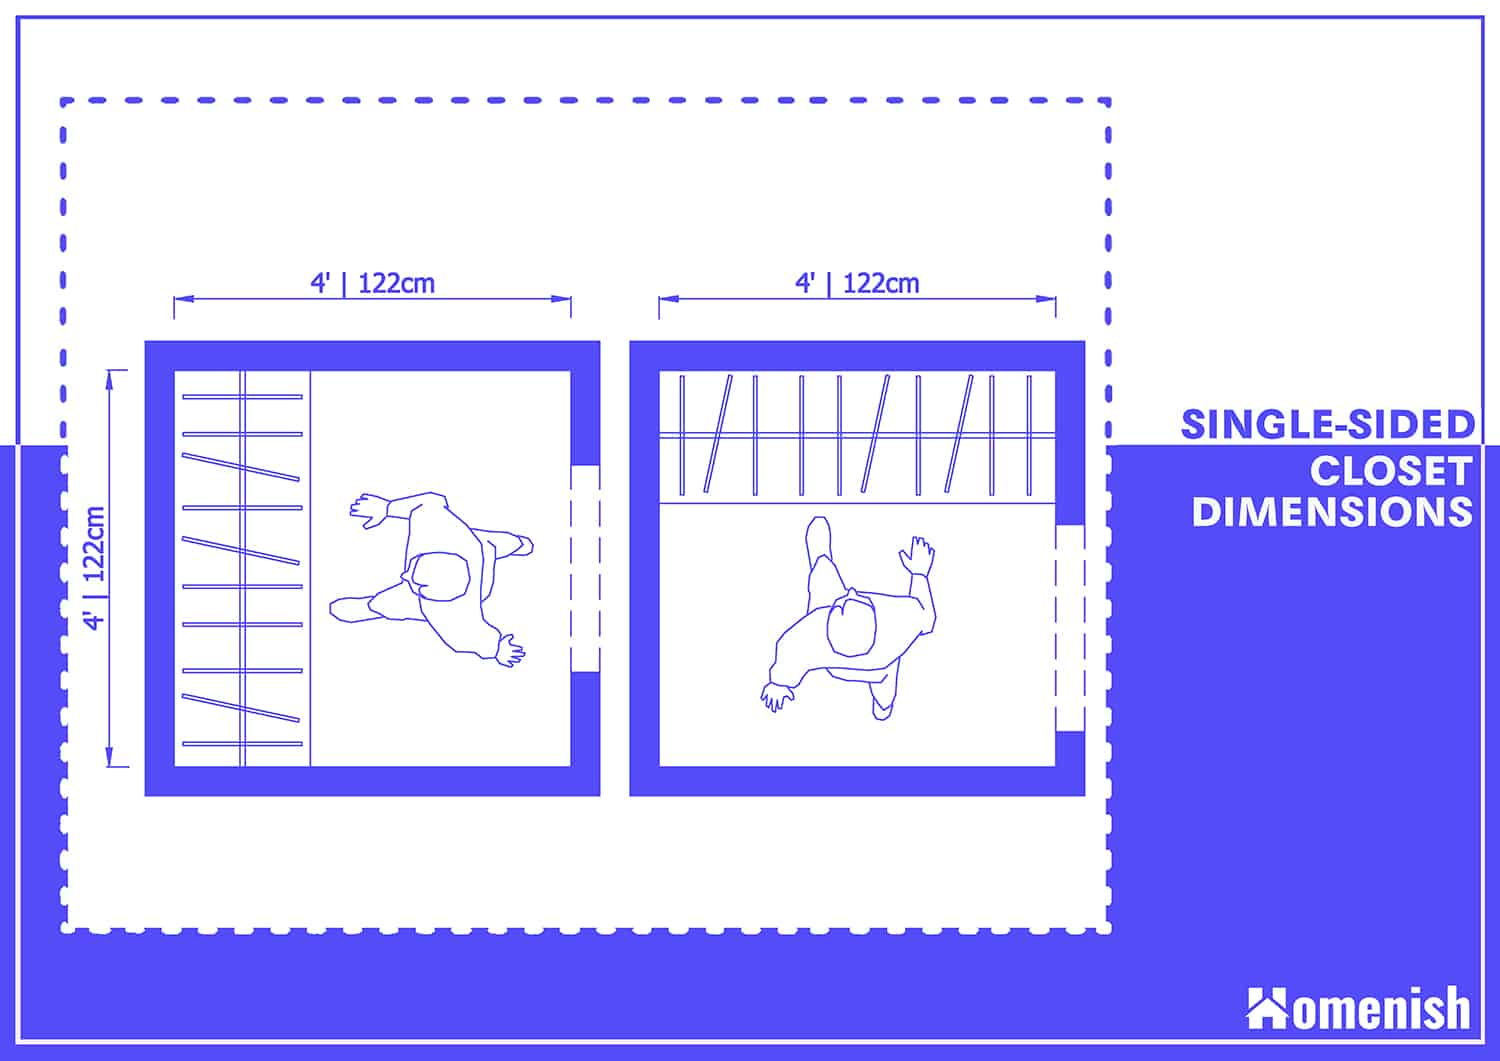 Single-Sided Closet Dimensions